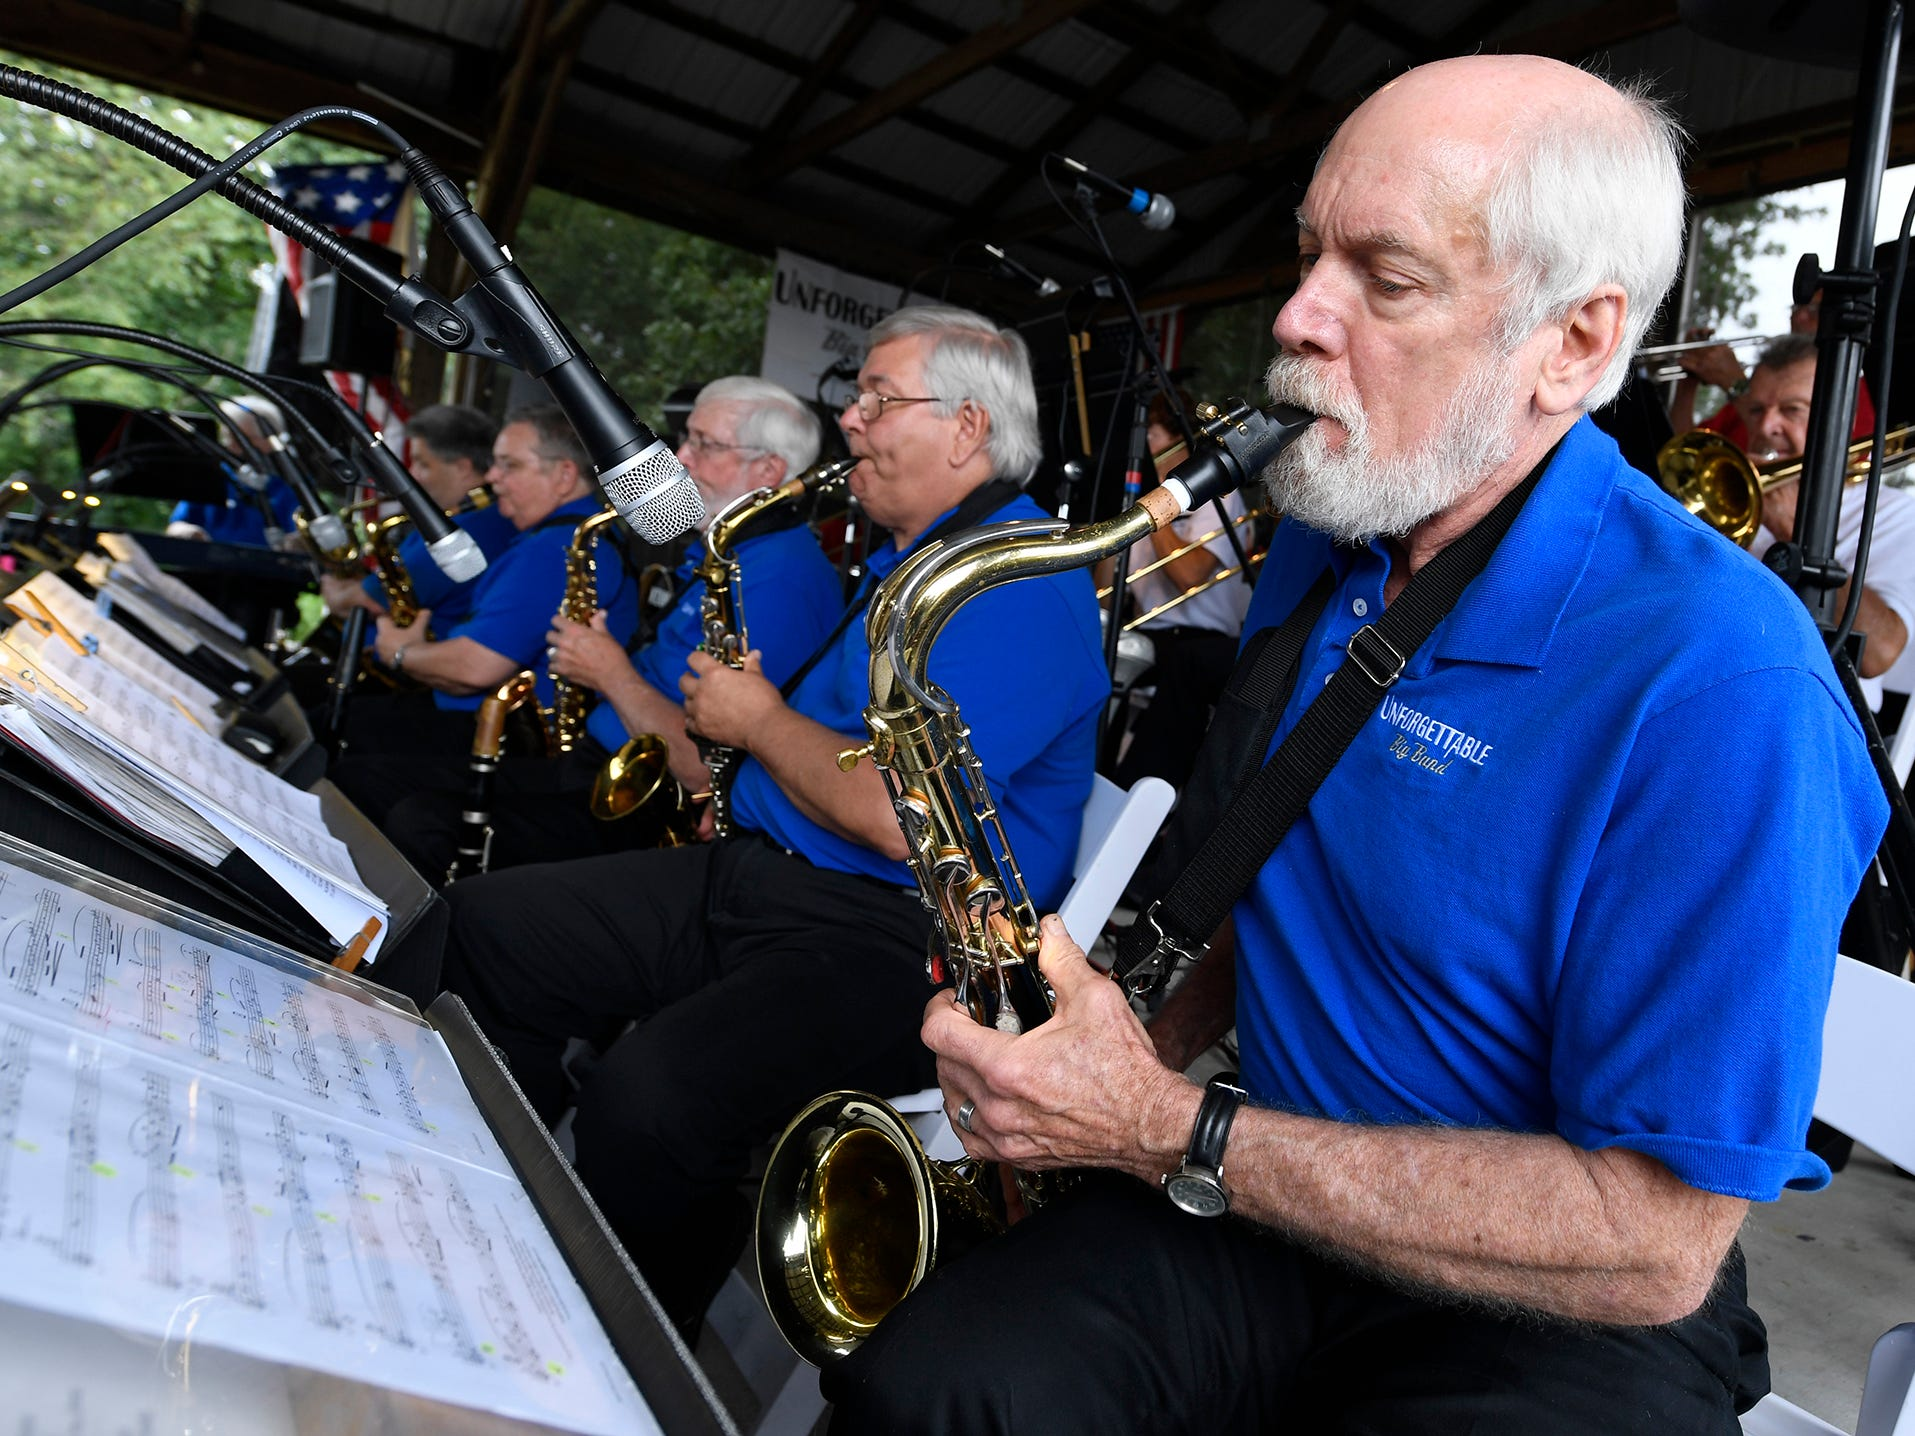 York's Unforgettable Big Band, including saxophone player Kerry Kyle, right, performs at Brown's Orchard & Farm Market, Sunday, August 18,  2018. John A. Pavoncello photo